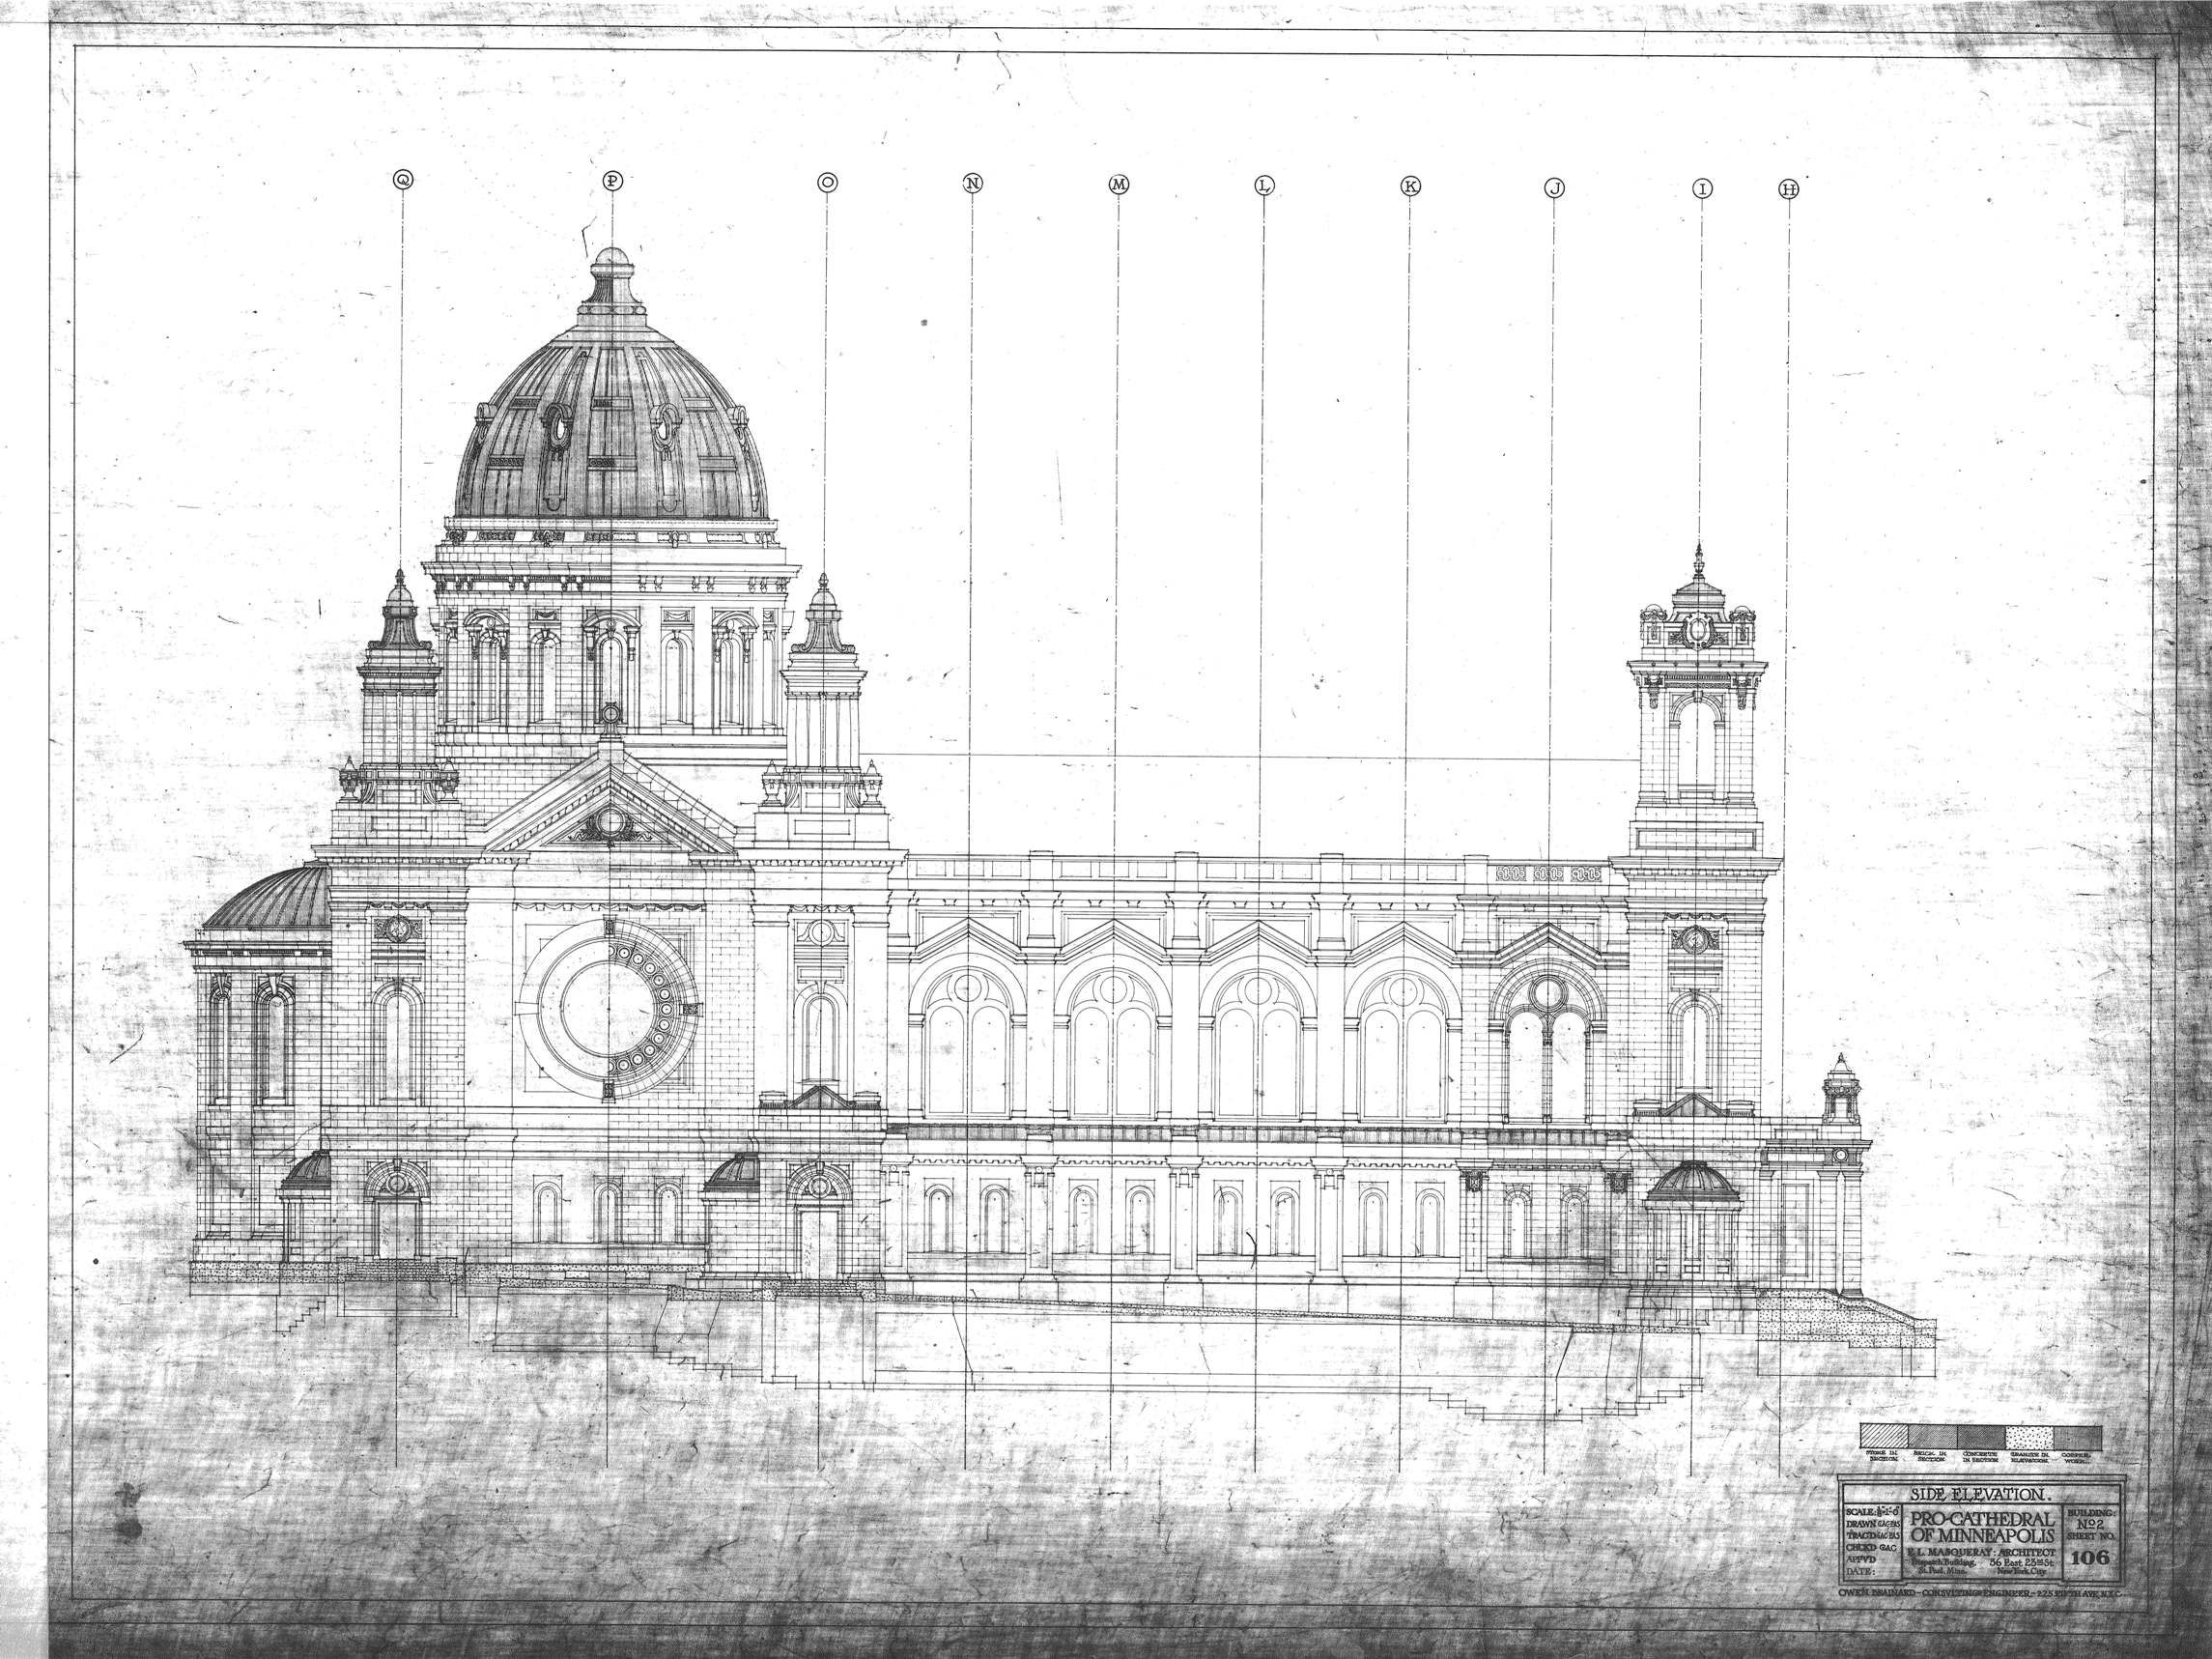 Vintage blueprint side elevation basilica of saint mary church pro vintage blueprint side elevation basilica of saint mary church pro cathedral of minneapolis e masqueray architect building no 2 sheet no malvernweather Gallery